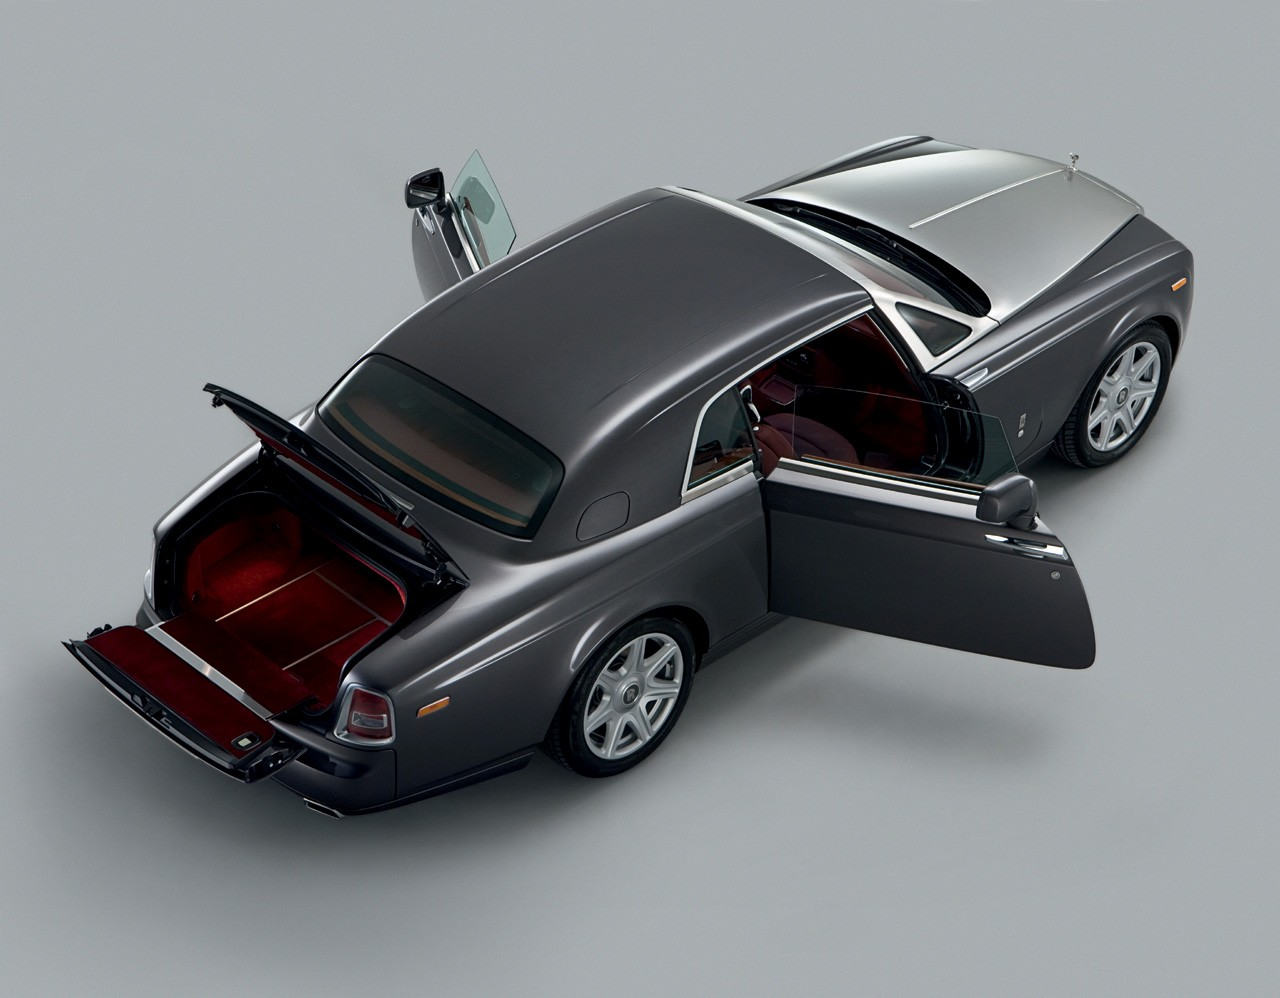 Roll Royce Phantom coupe